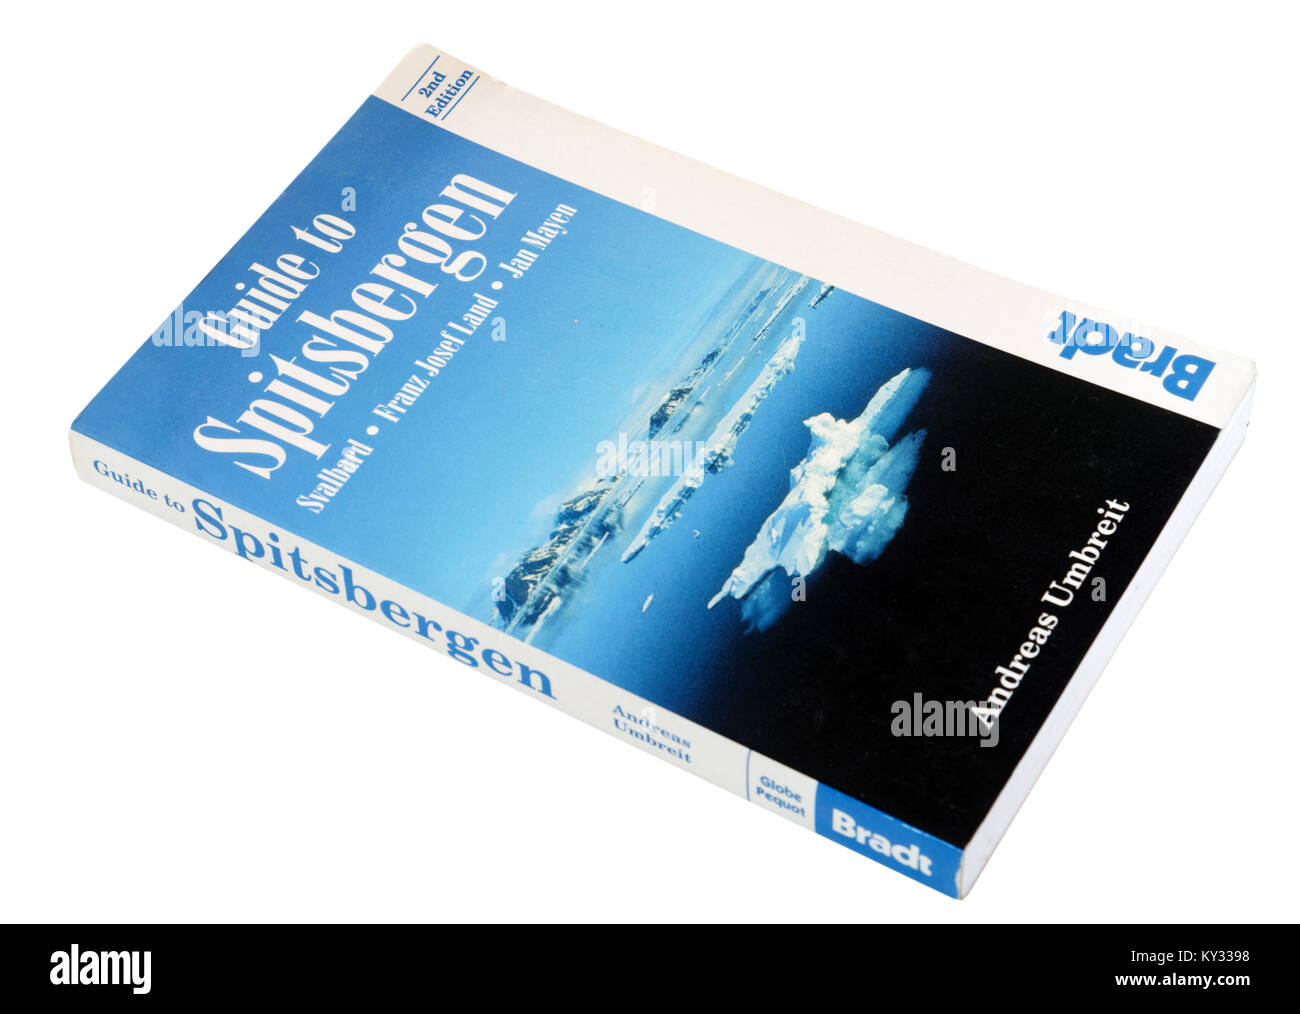 The Bradt guide to Spitsbergen - Stock Image